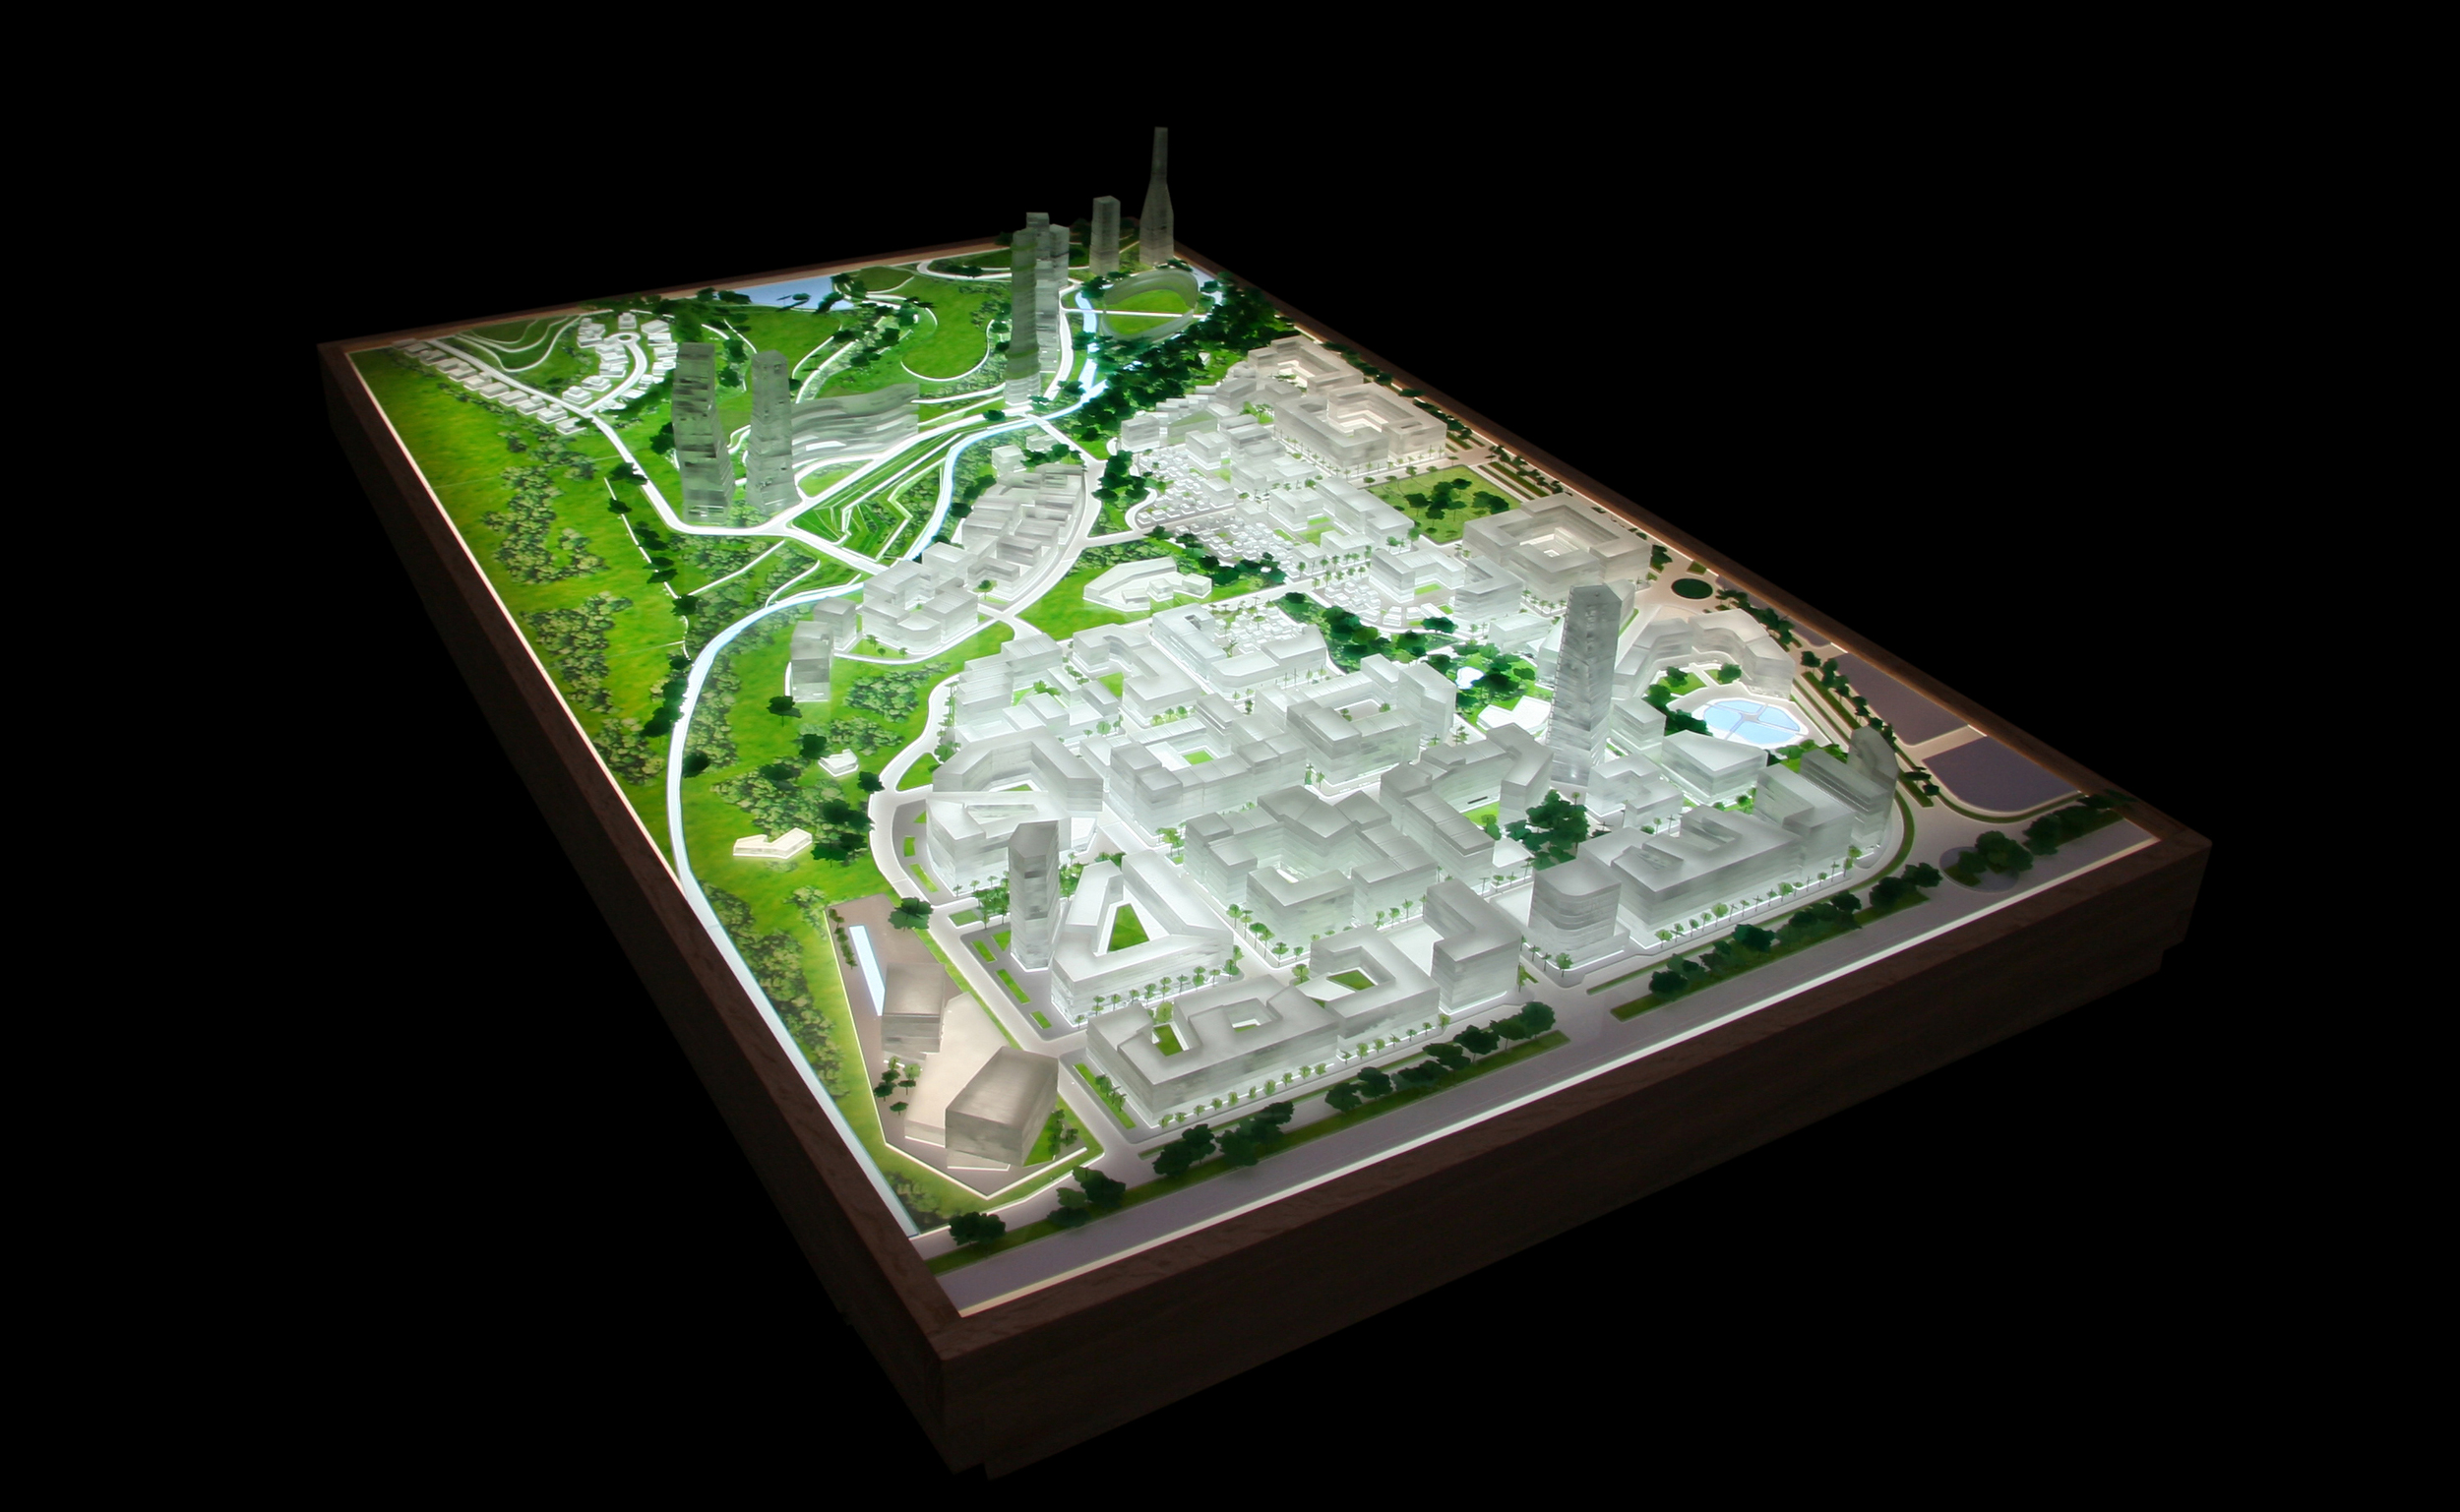 """Copy of """"Nanocity: A City For the 21st Century"""" at the College of Environmental Design, Berkeley, 2007"""